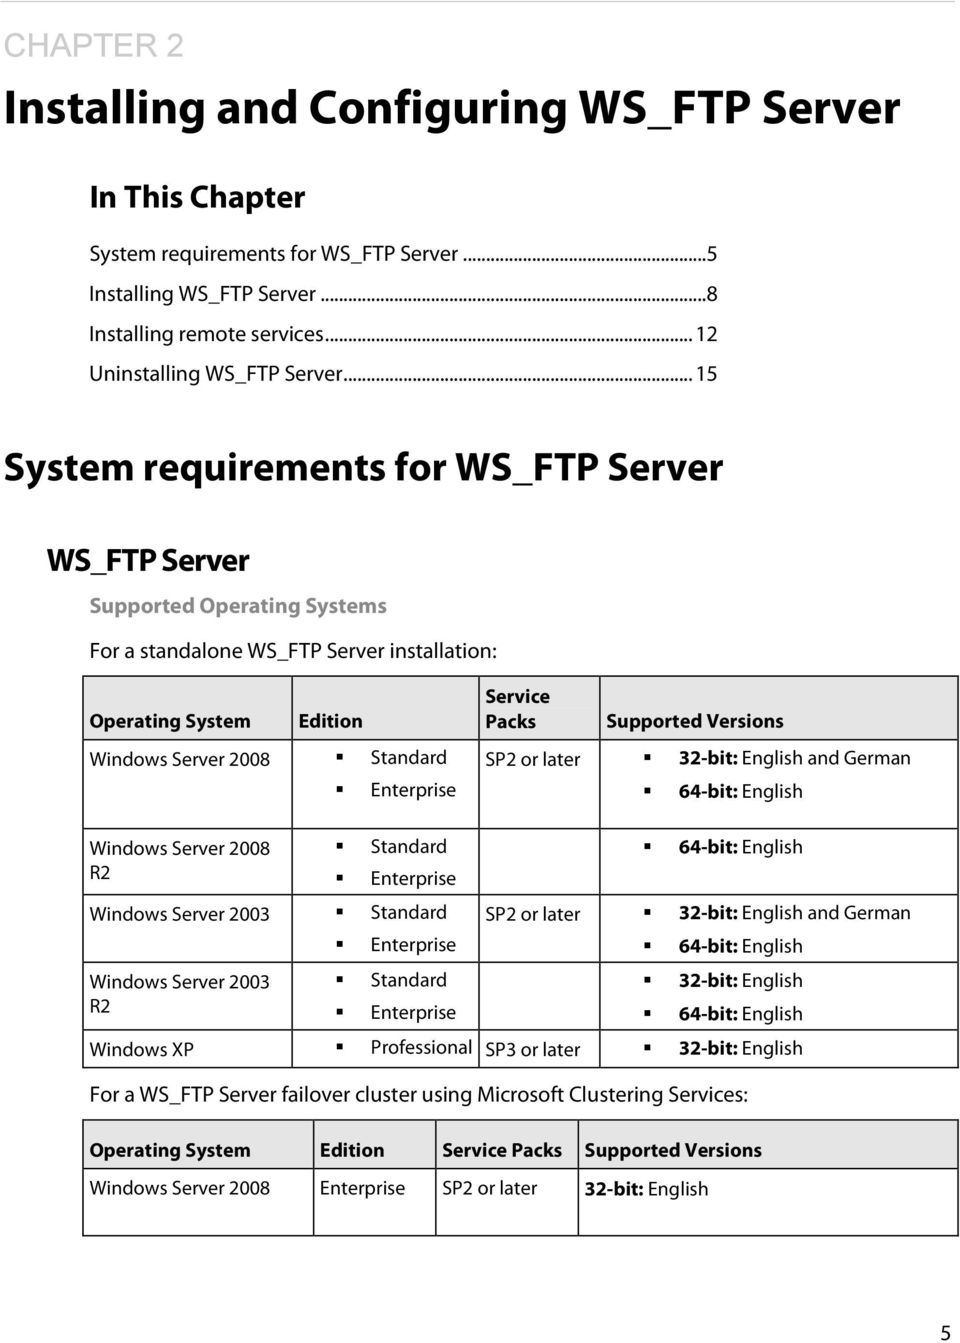 Service Packs Supported Versions SP2 or later 32-bit: English and German 64-bit: English Windows Server 2008 Standard R2 Enterprise Windows Server 2003 Standard Enterprise Windows Server 2003 R2